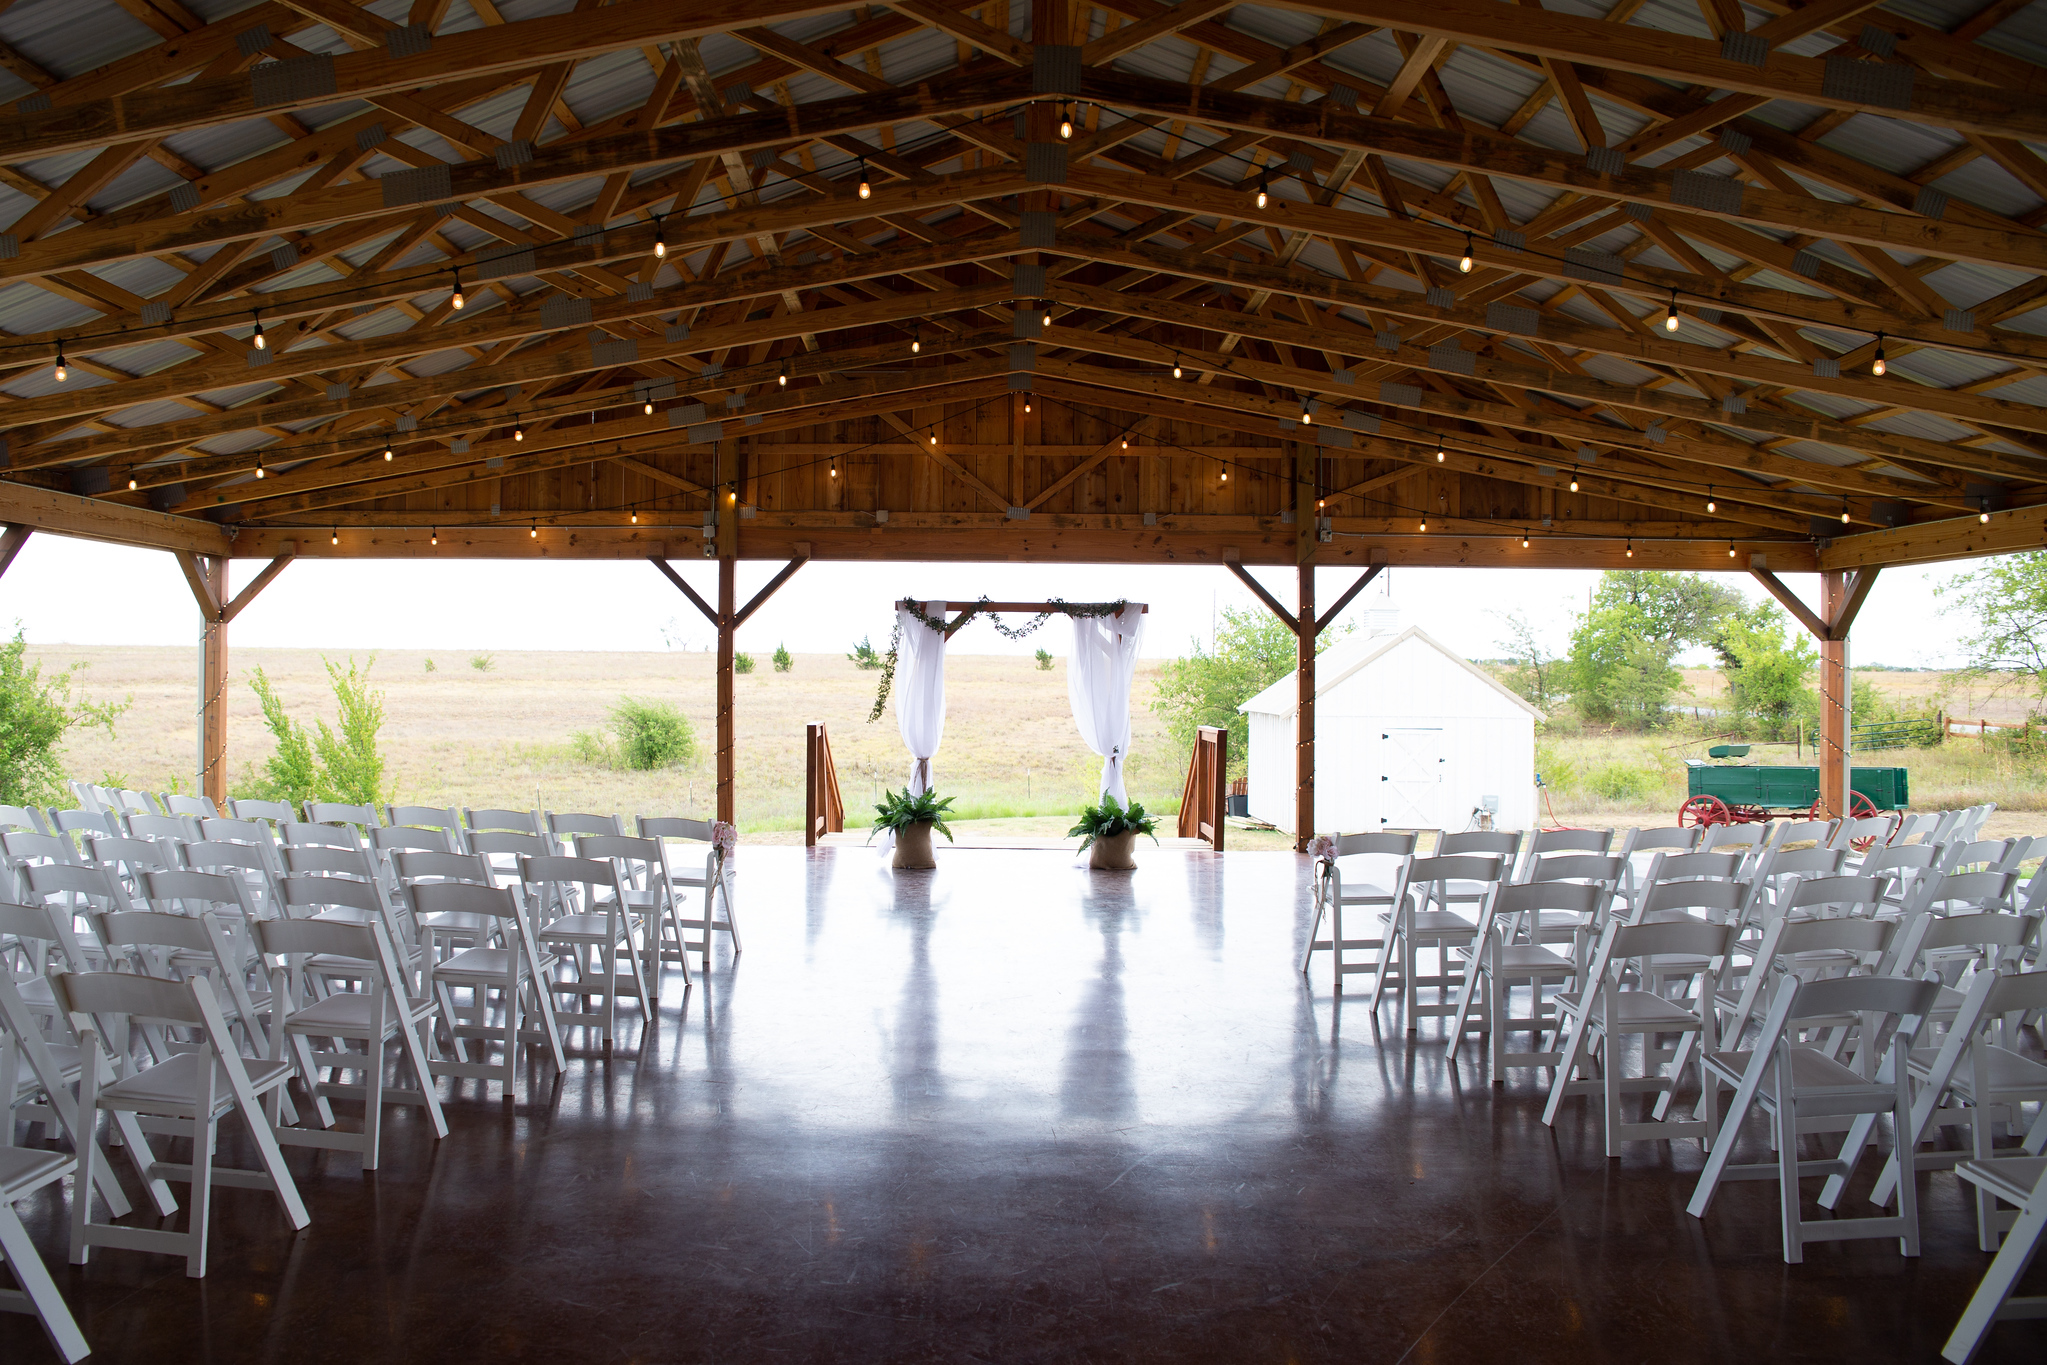 shaded outdoor wedding venue with white chairs string lights and a simple wedding arch